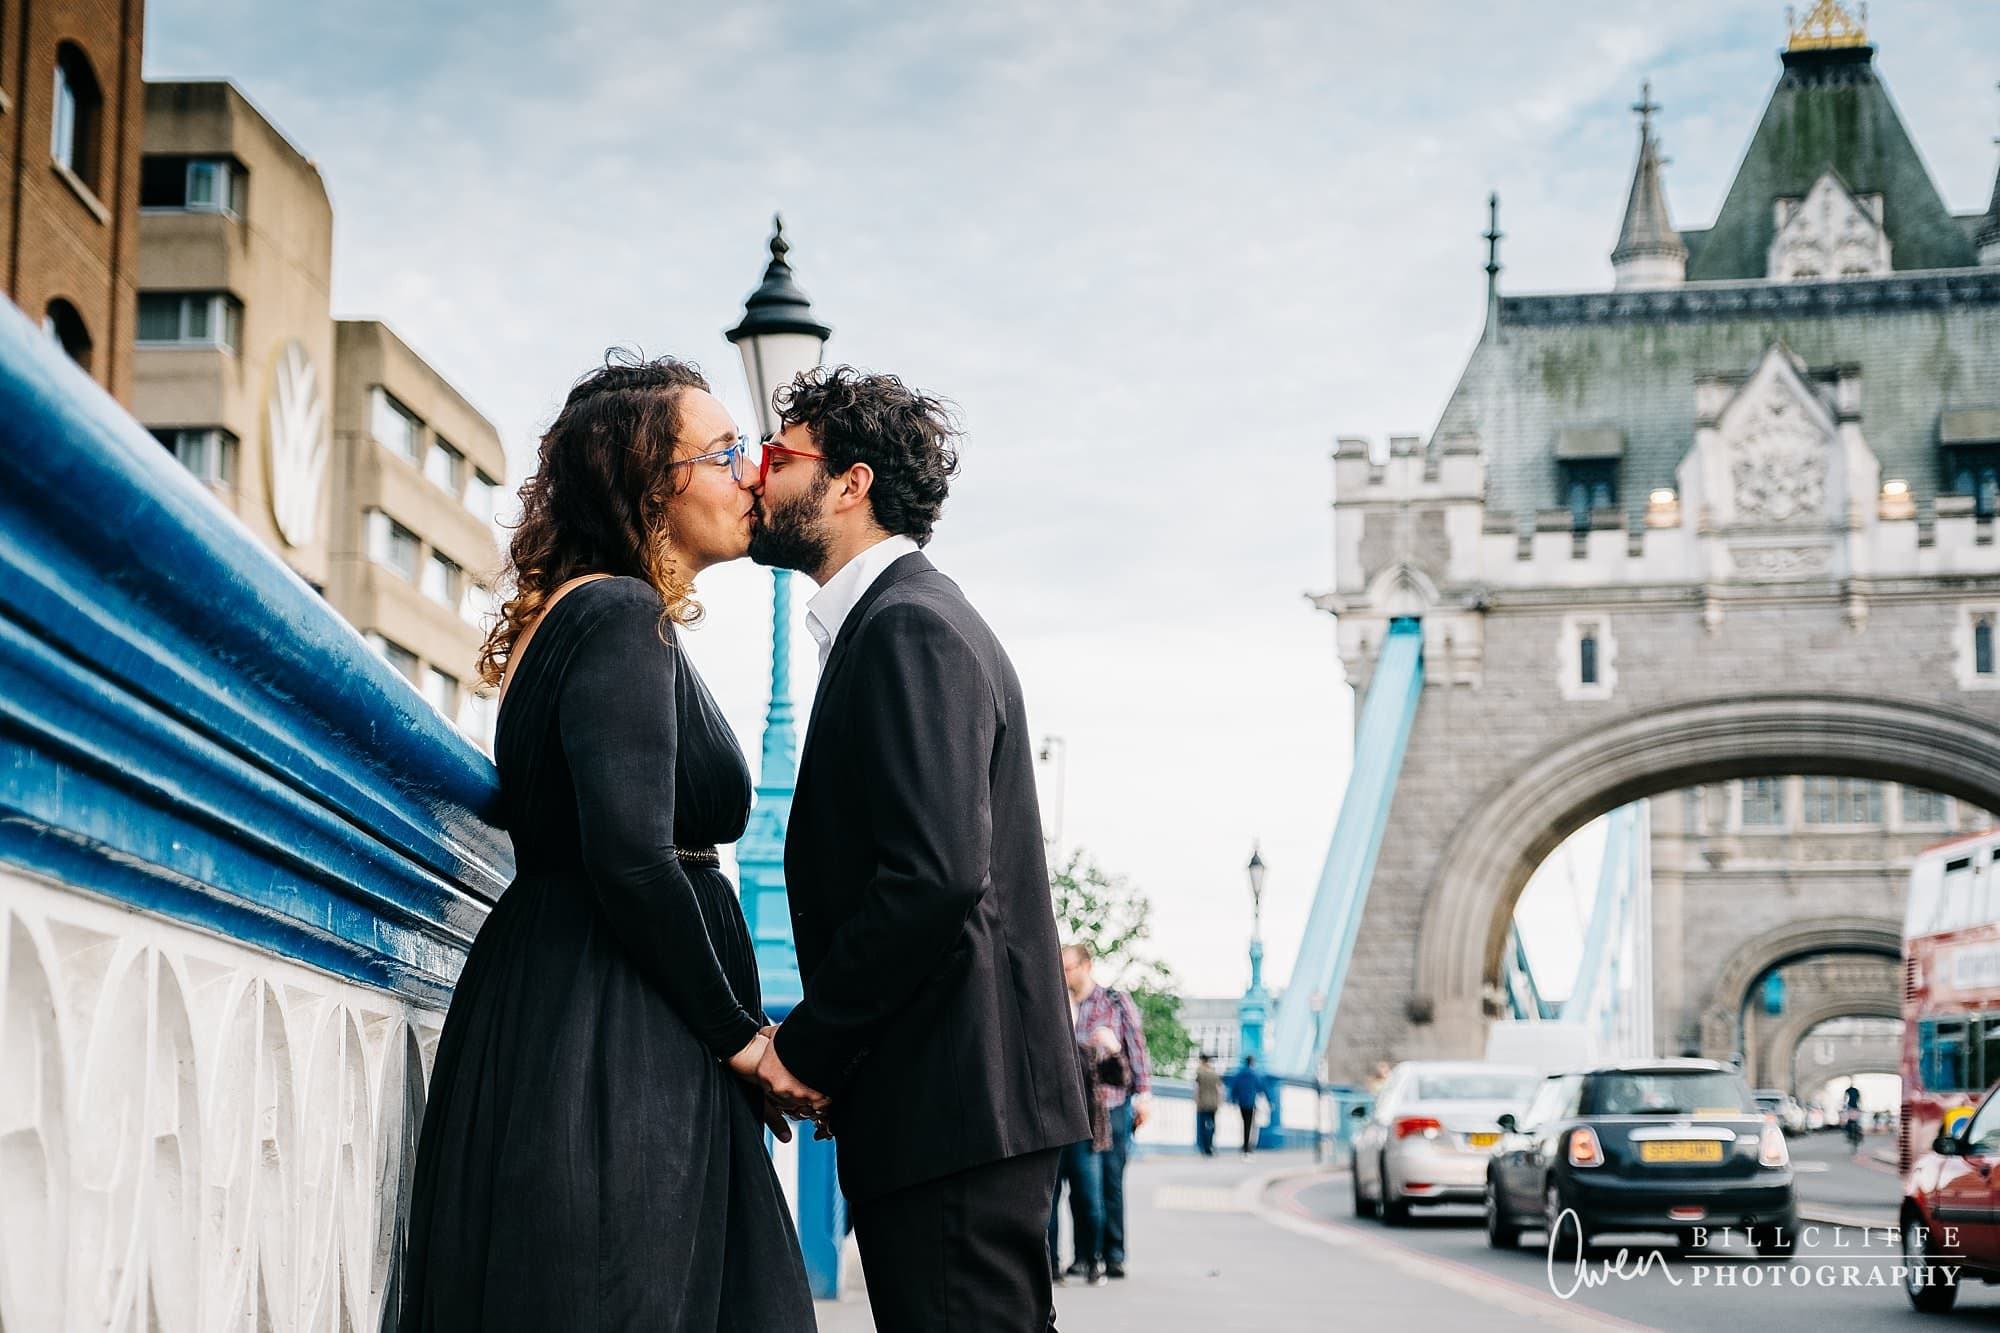 london engagement proposal photographer routemaster gr 007 - A Romantic Marriage Proposal on a London Routemaster Bus